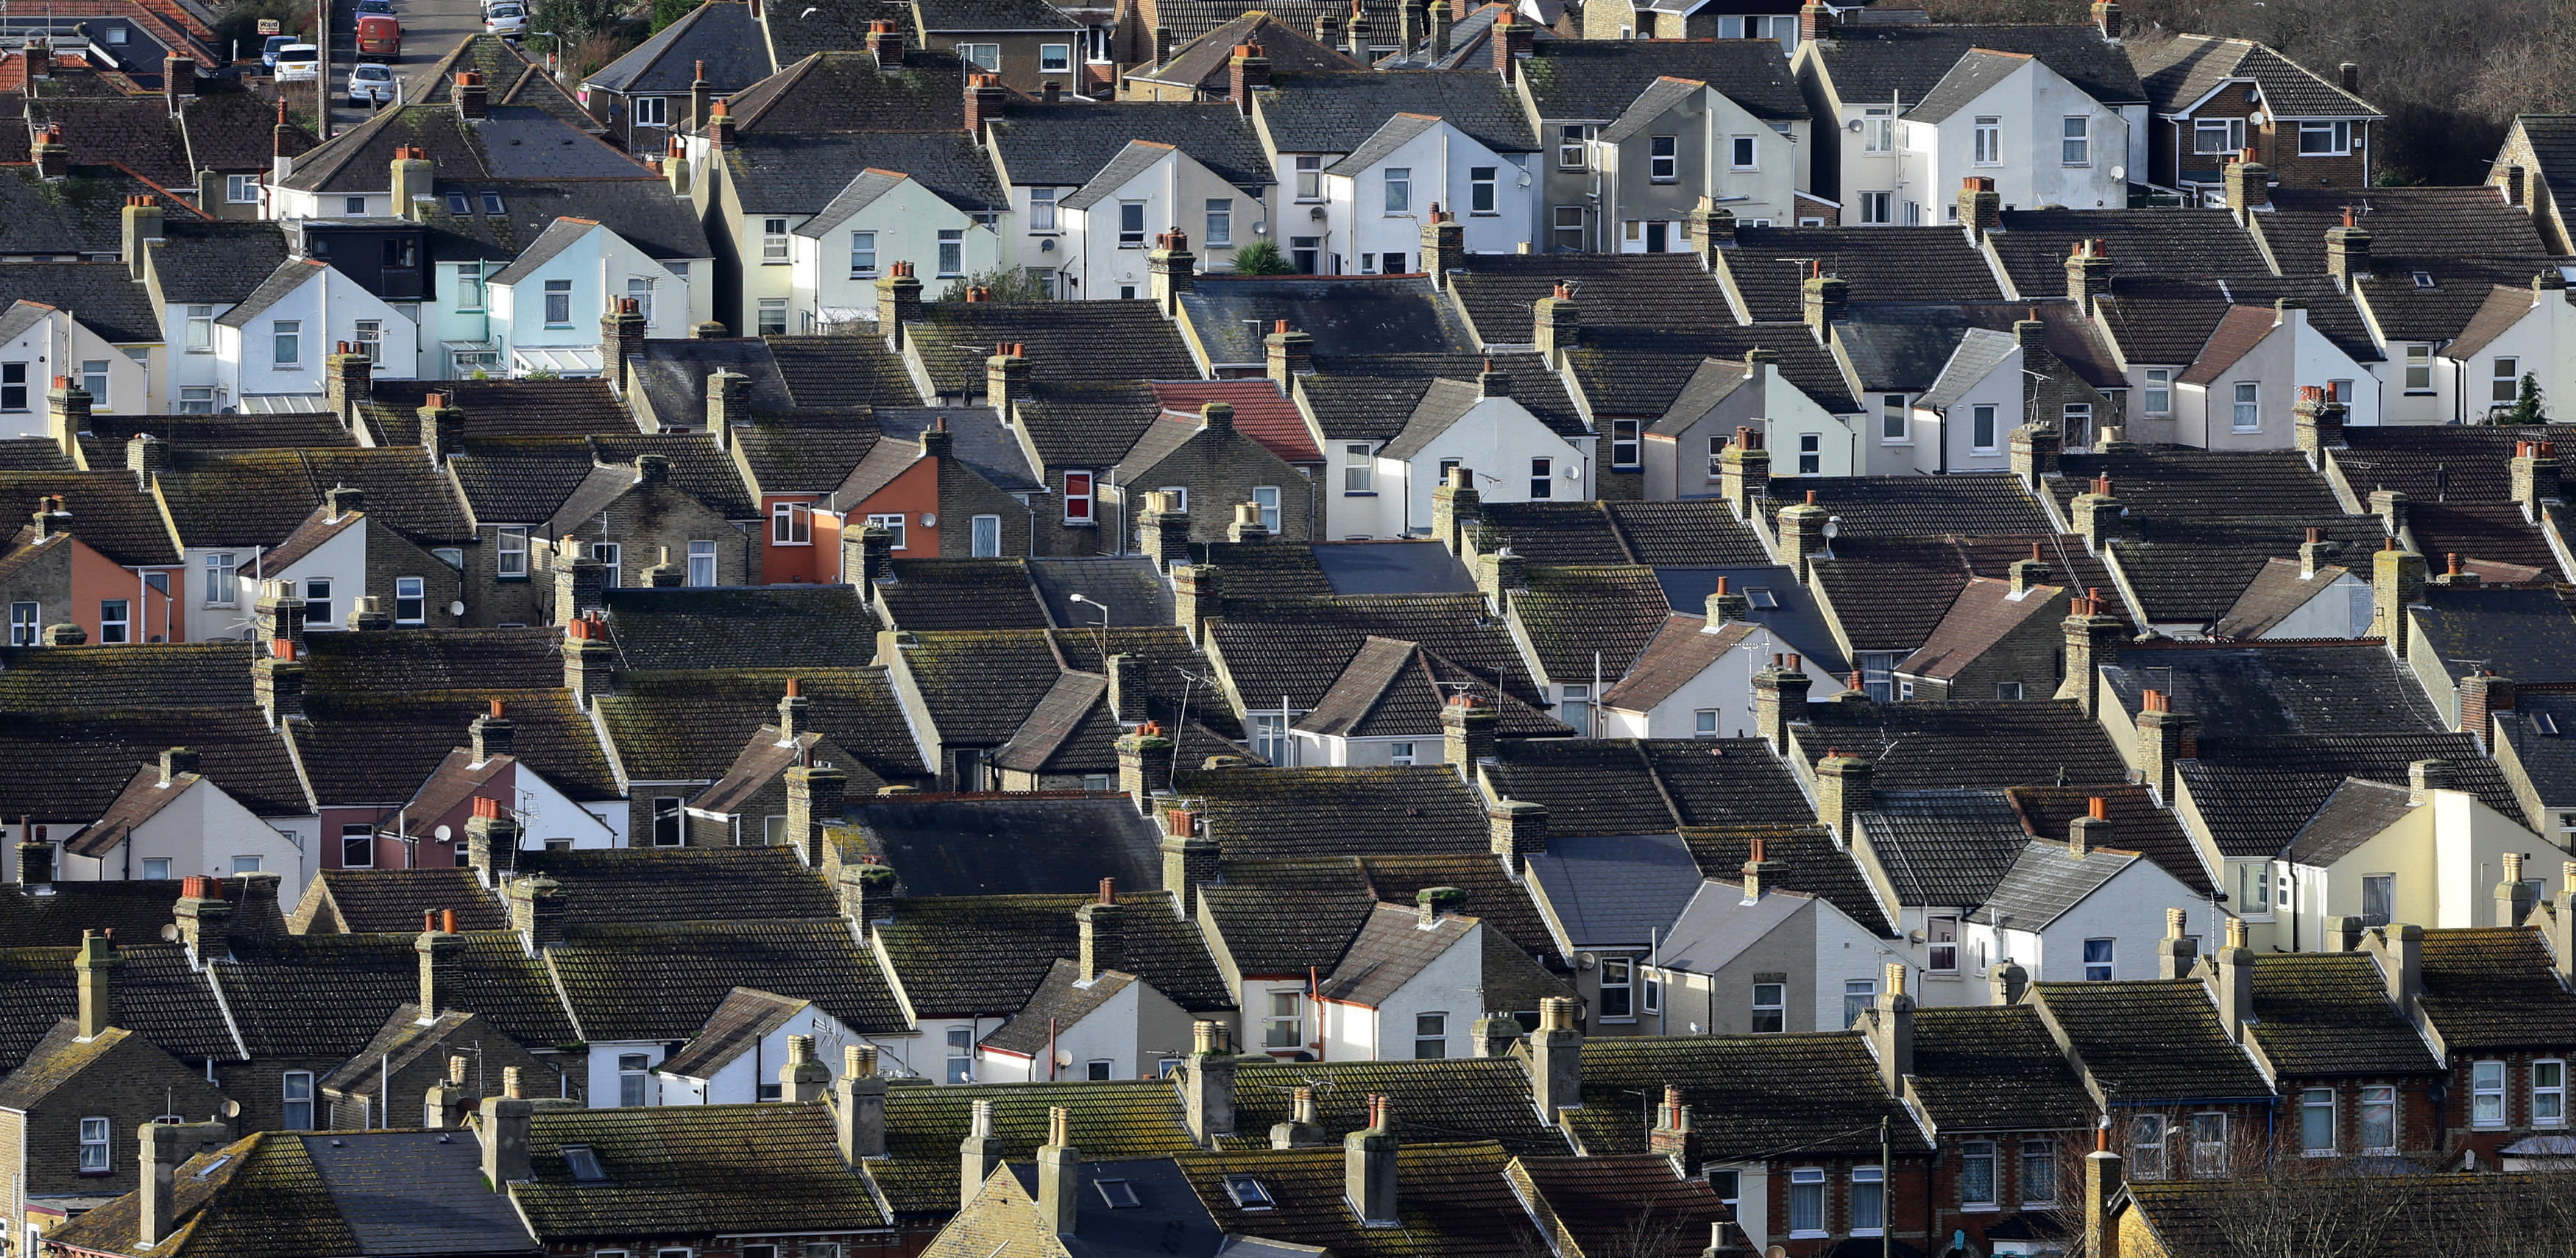 Mortgage body urges government to act on Brexit